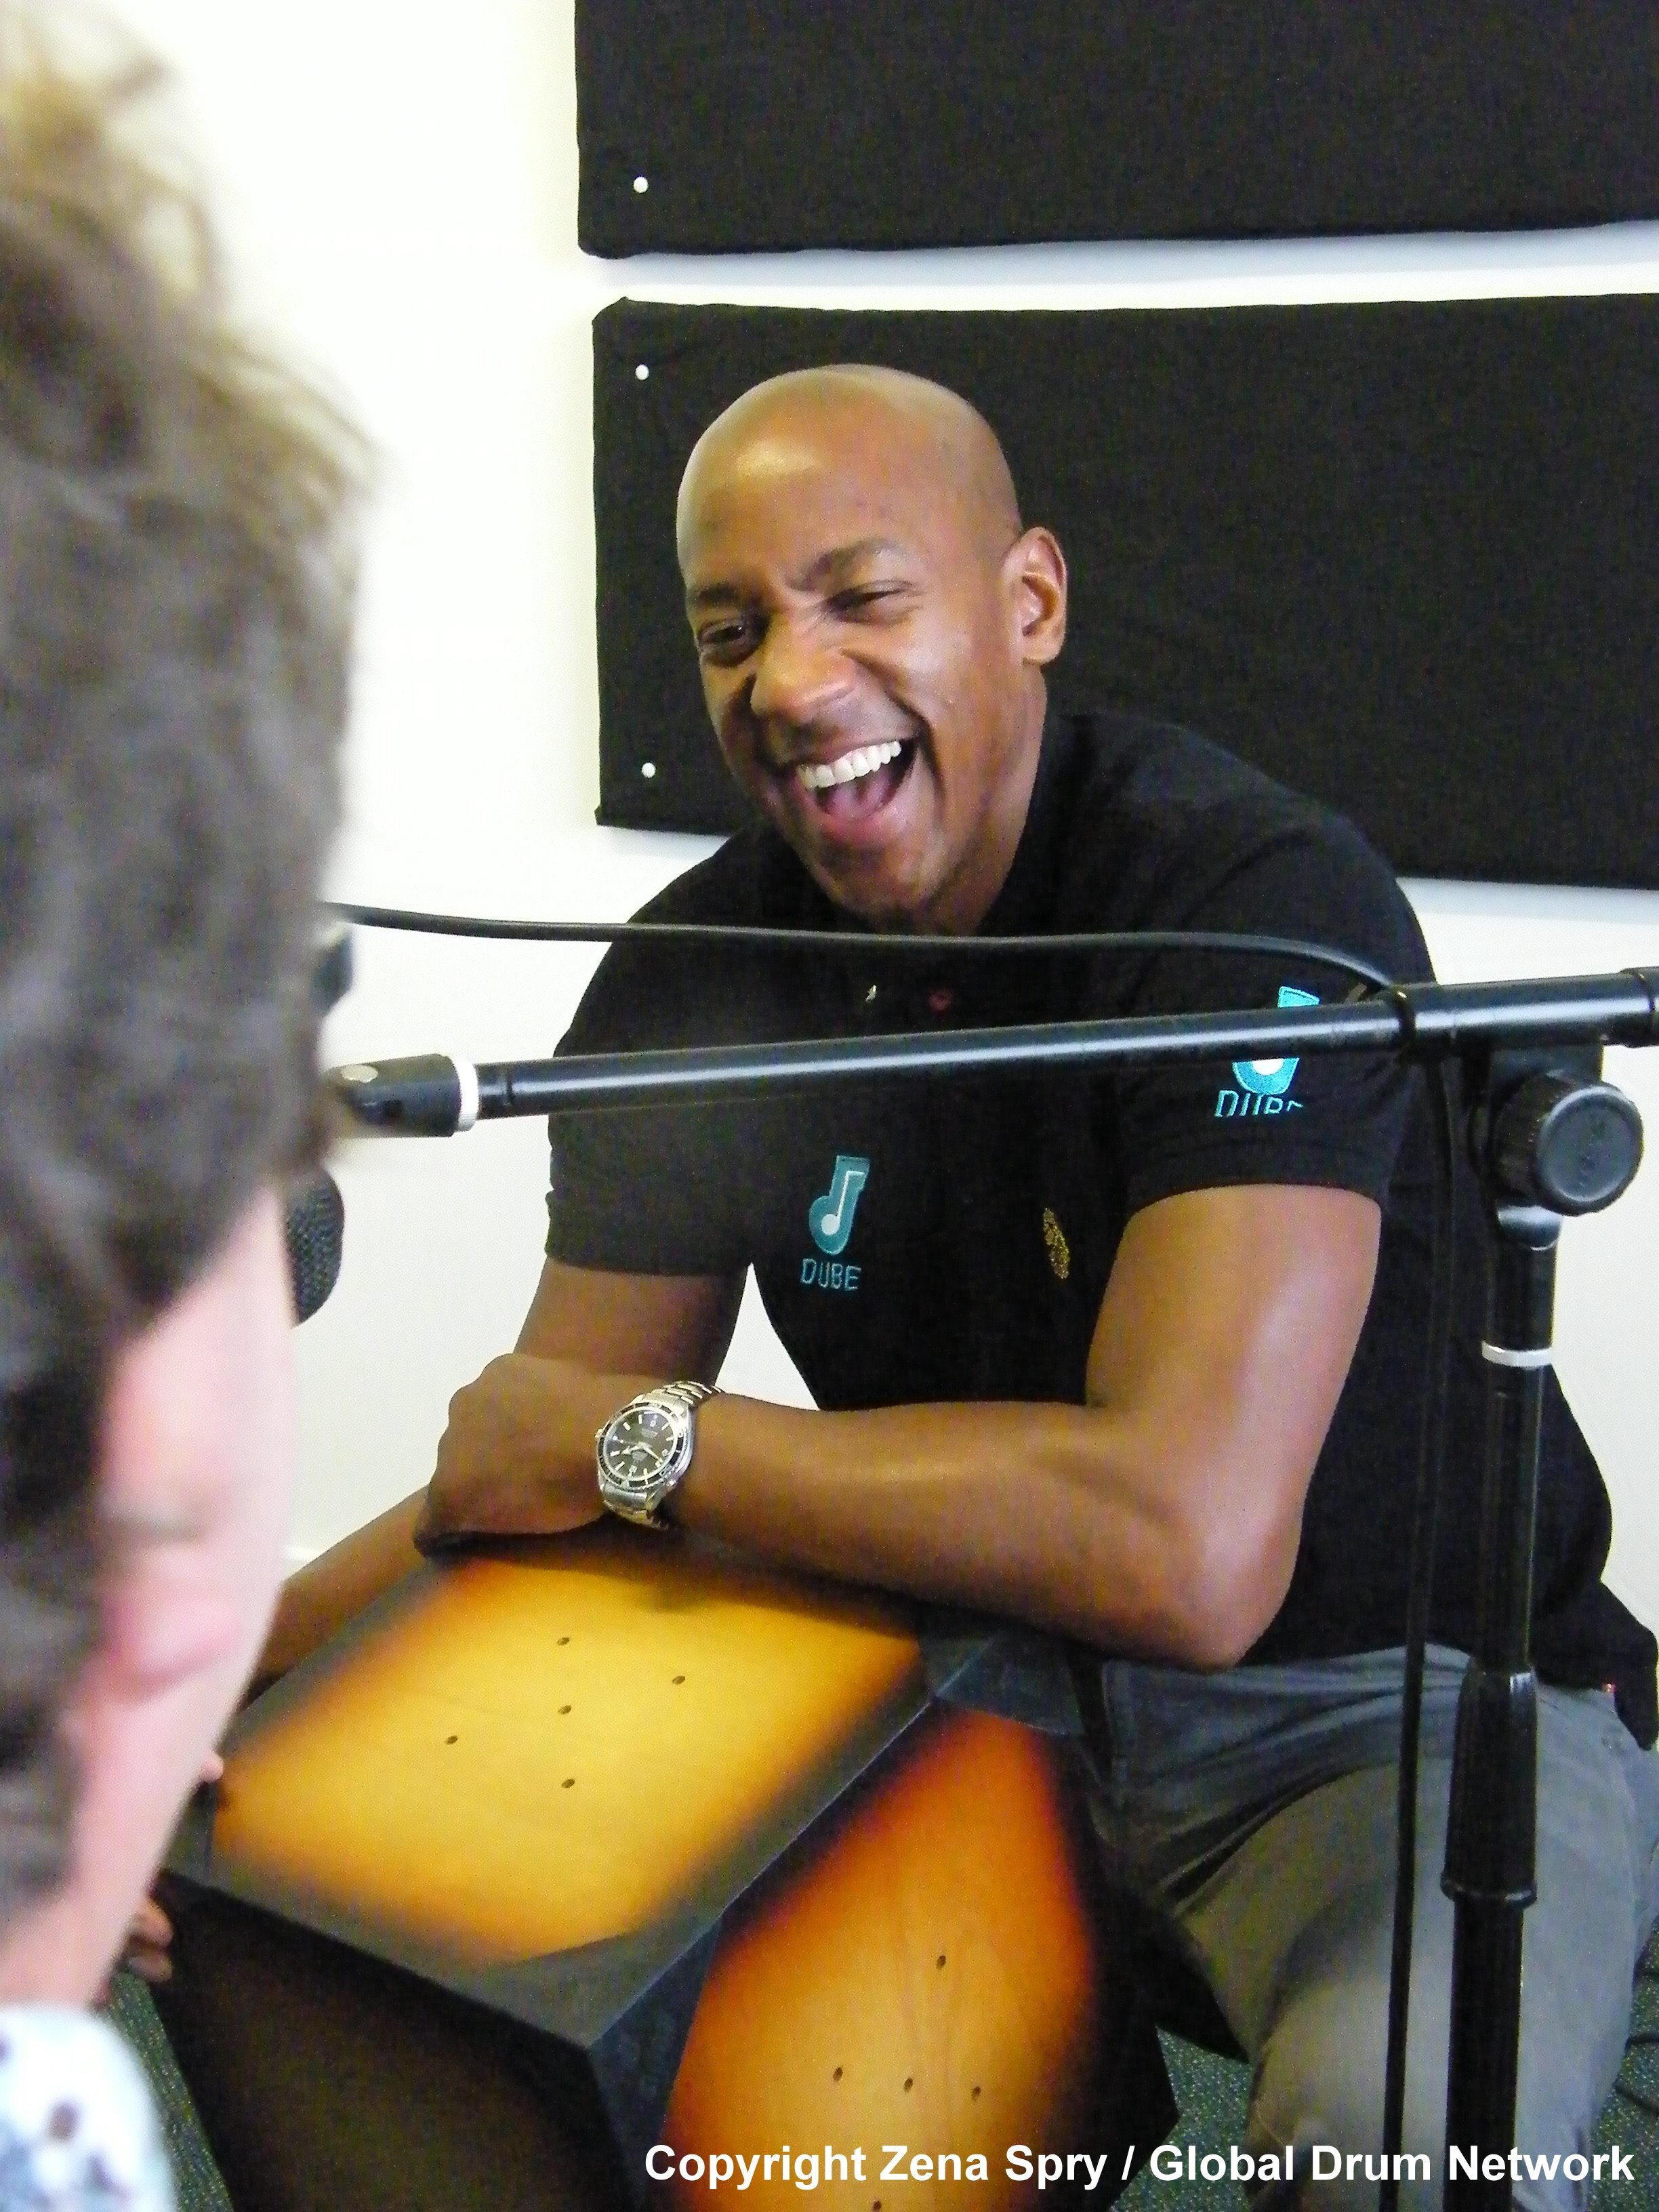 From International Footbal to Percussion Instrument Design. DION DUBLIN - Global Drum Network Episode 3